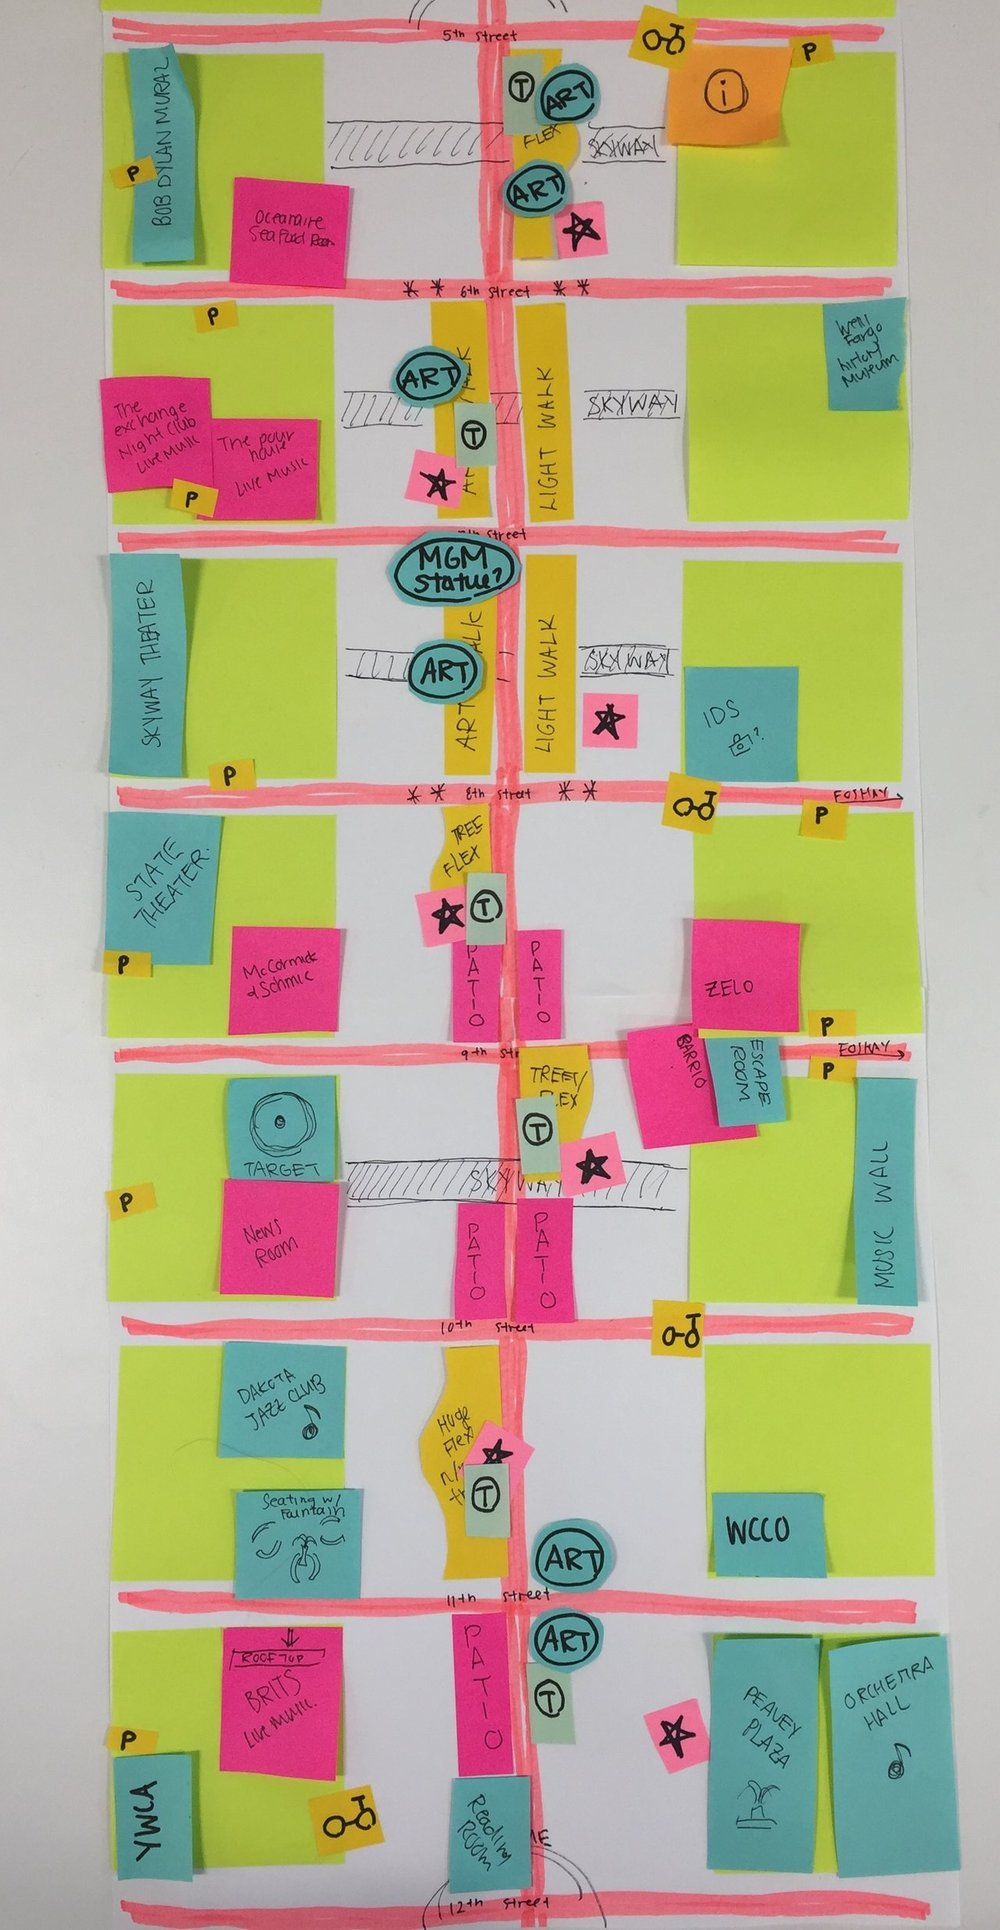 Map of all major touch points within Nicollet Mall.